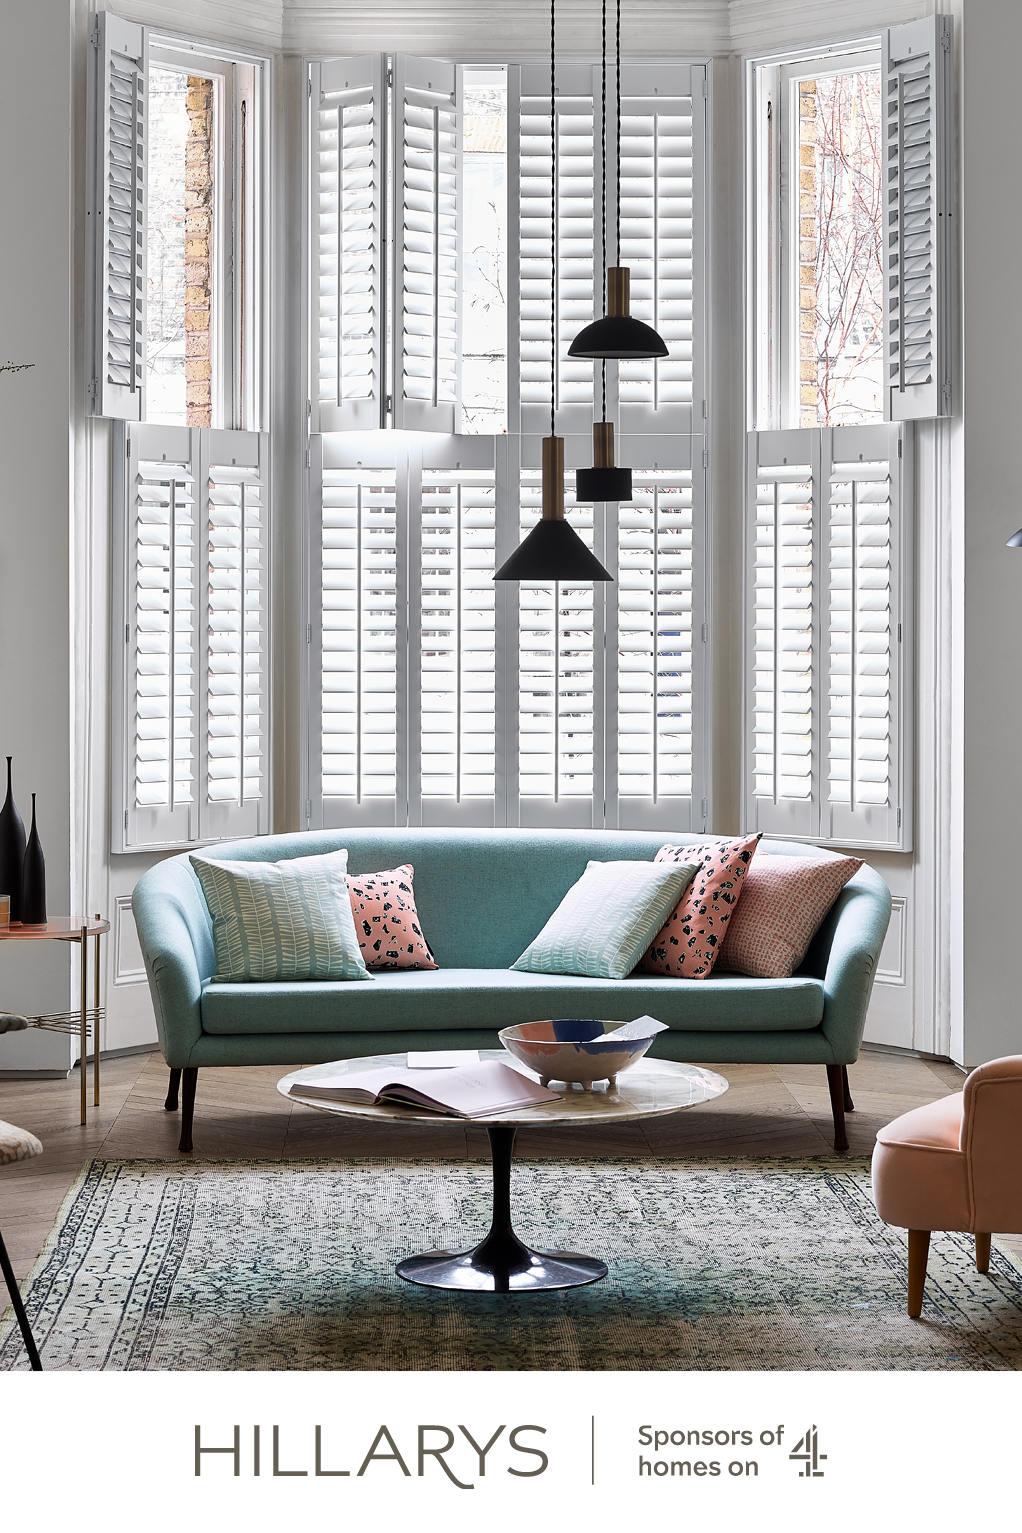 These Tier On Tier Shutters Have Top And Bottom Panels That Open Independently These Shutters Will Flood Your Living Room In Natural Lig Room Living Room Home #shutters #for #living #room